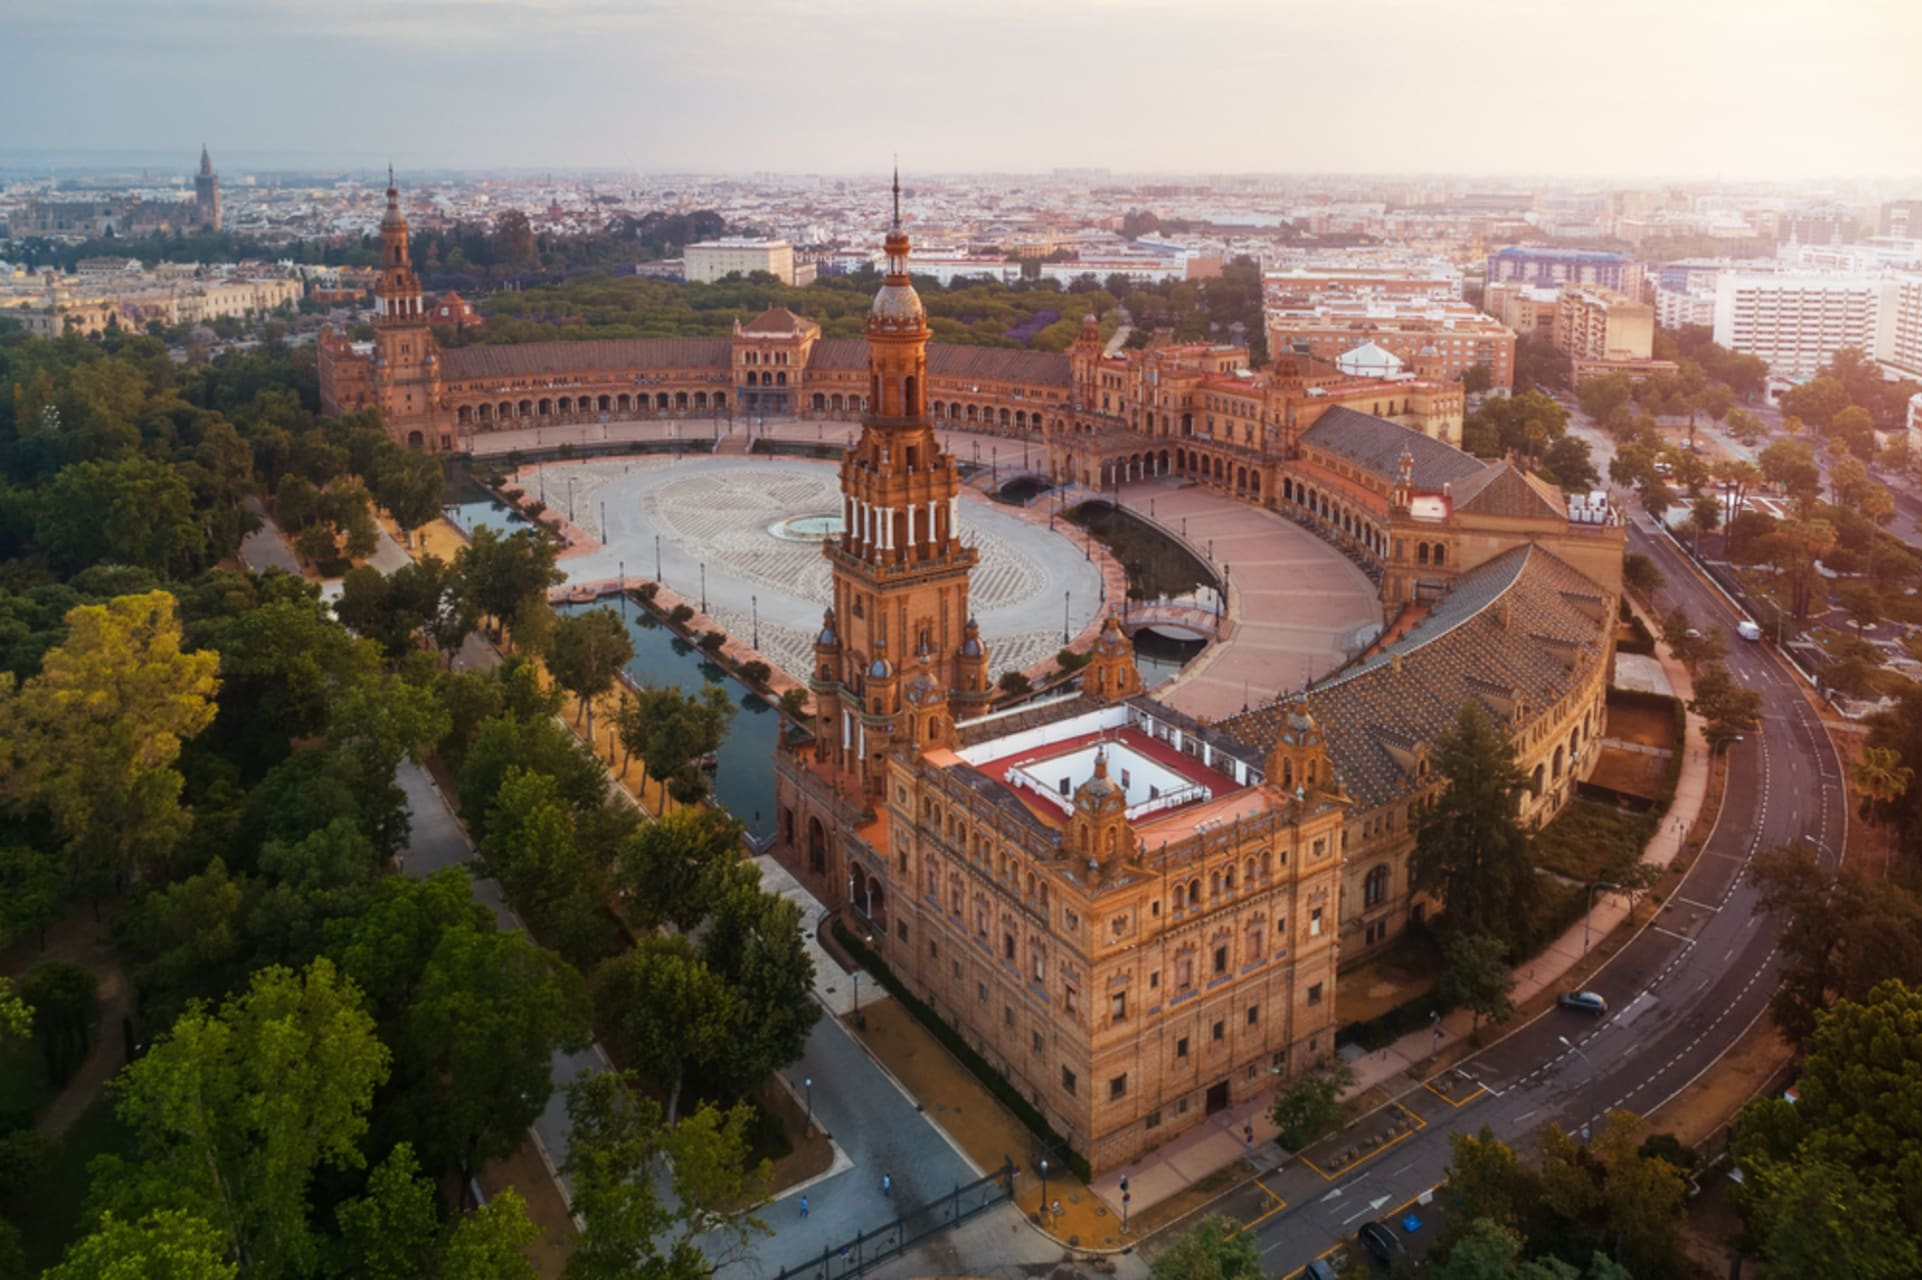 Seville - Plaza de España in Seville: The Crown Jewel of the World!